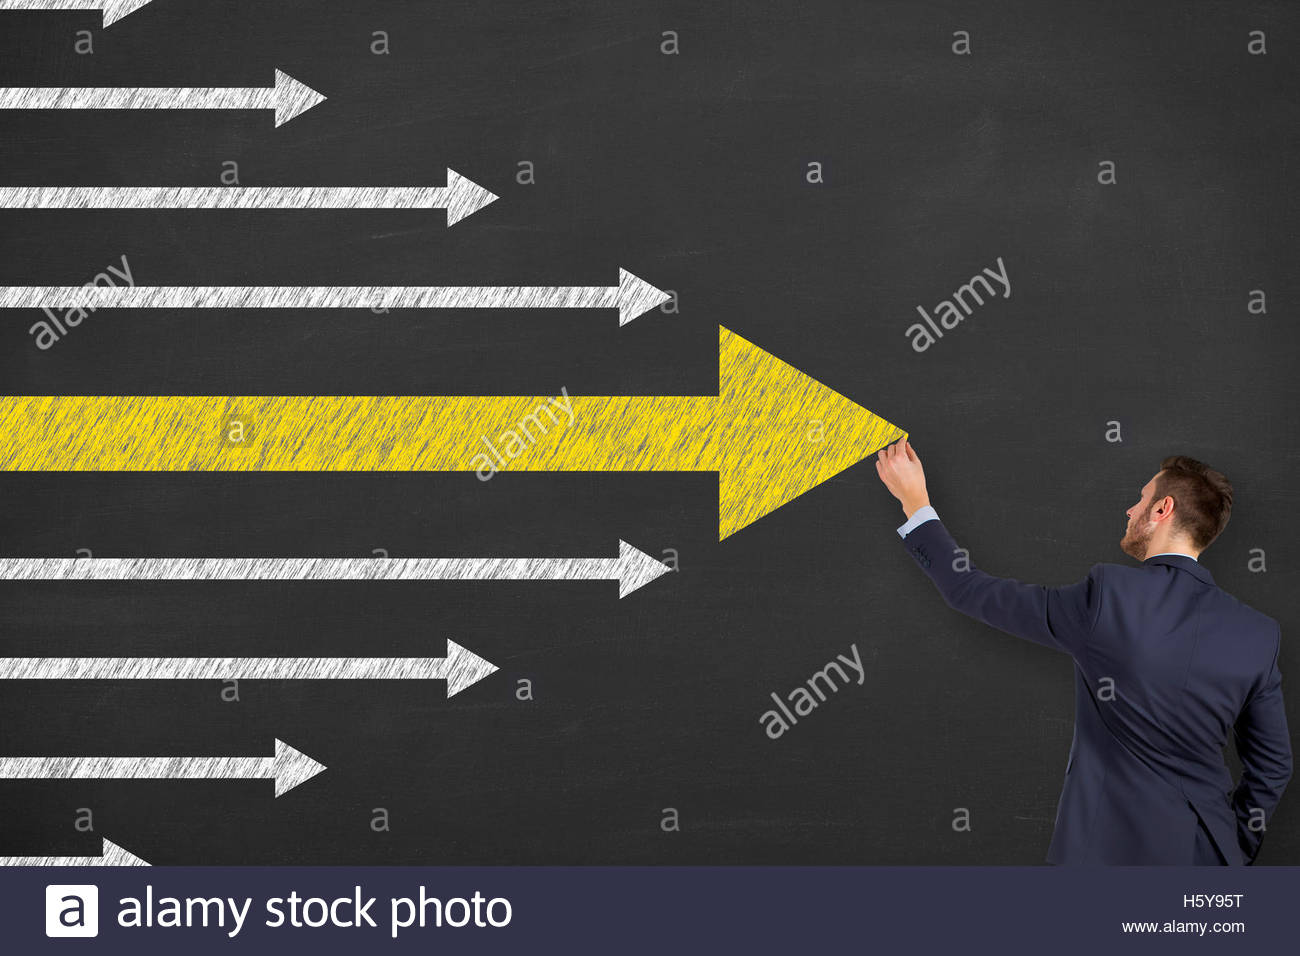 A business man is drawing Leadership concept with arrows on blackboard - Stock Image